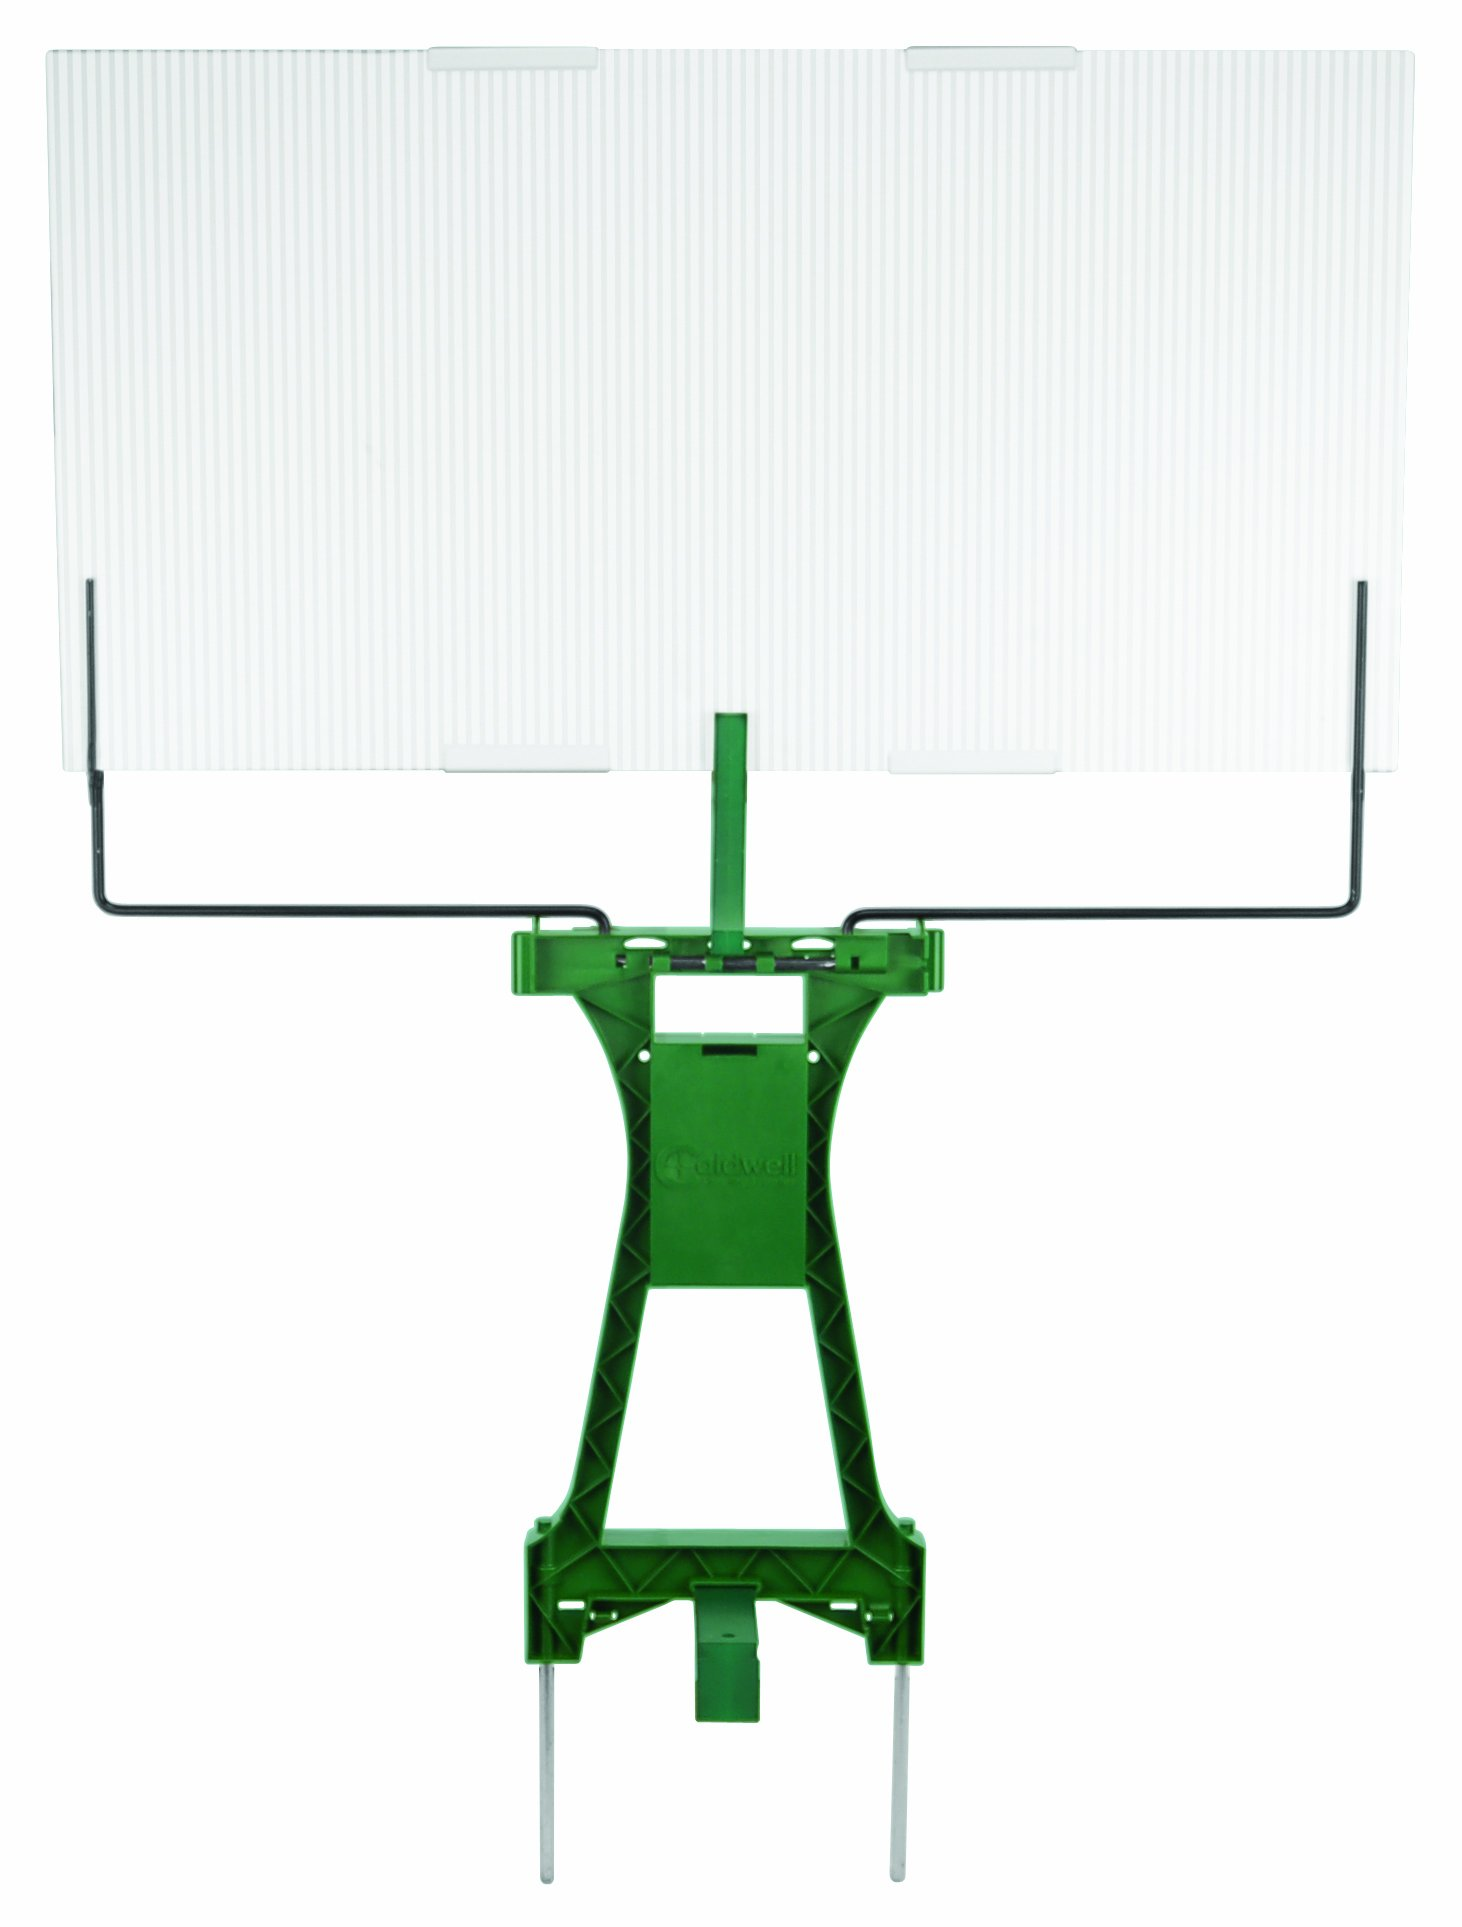 Caldwell Ultimate Target Stand with Weather Proof Backer, Collapsible Design and Easy Setup for Outdoor, Range, Shooting and Hunting